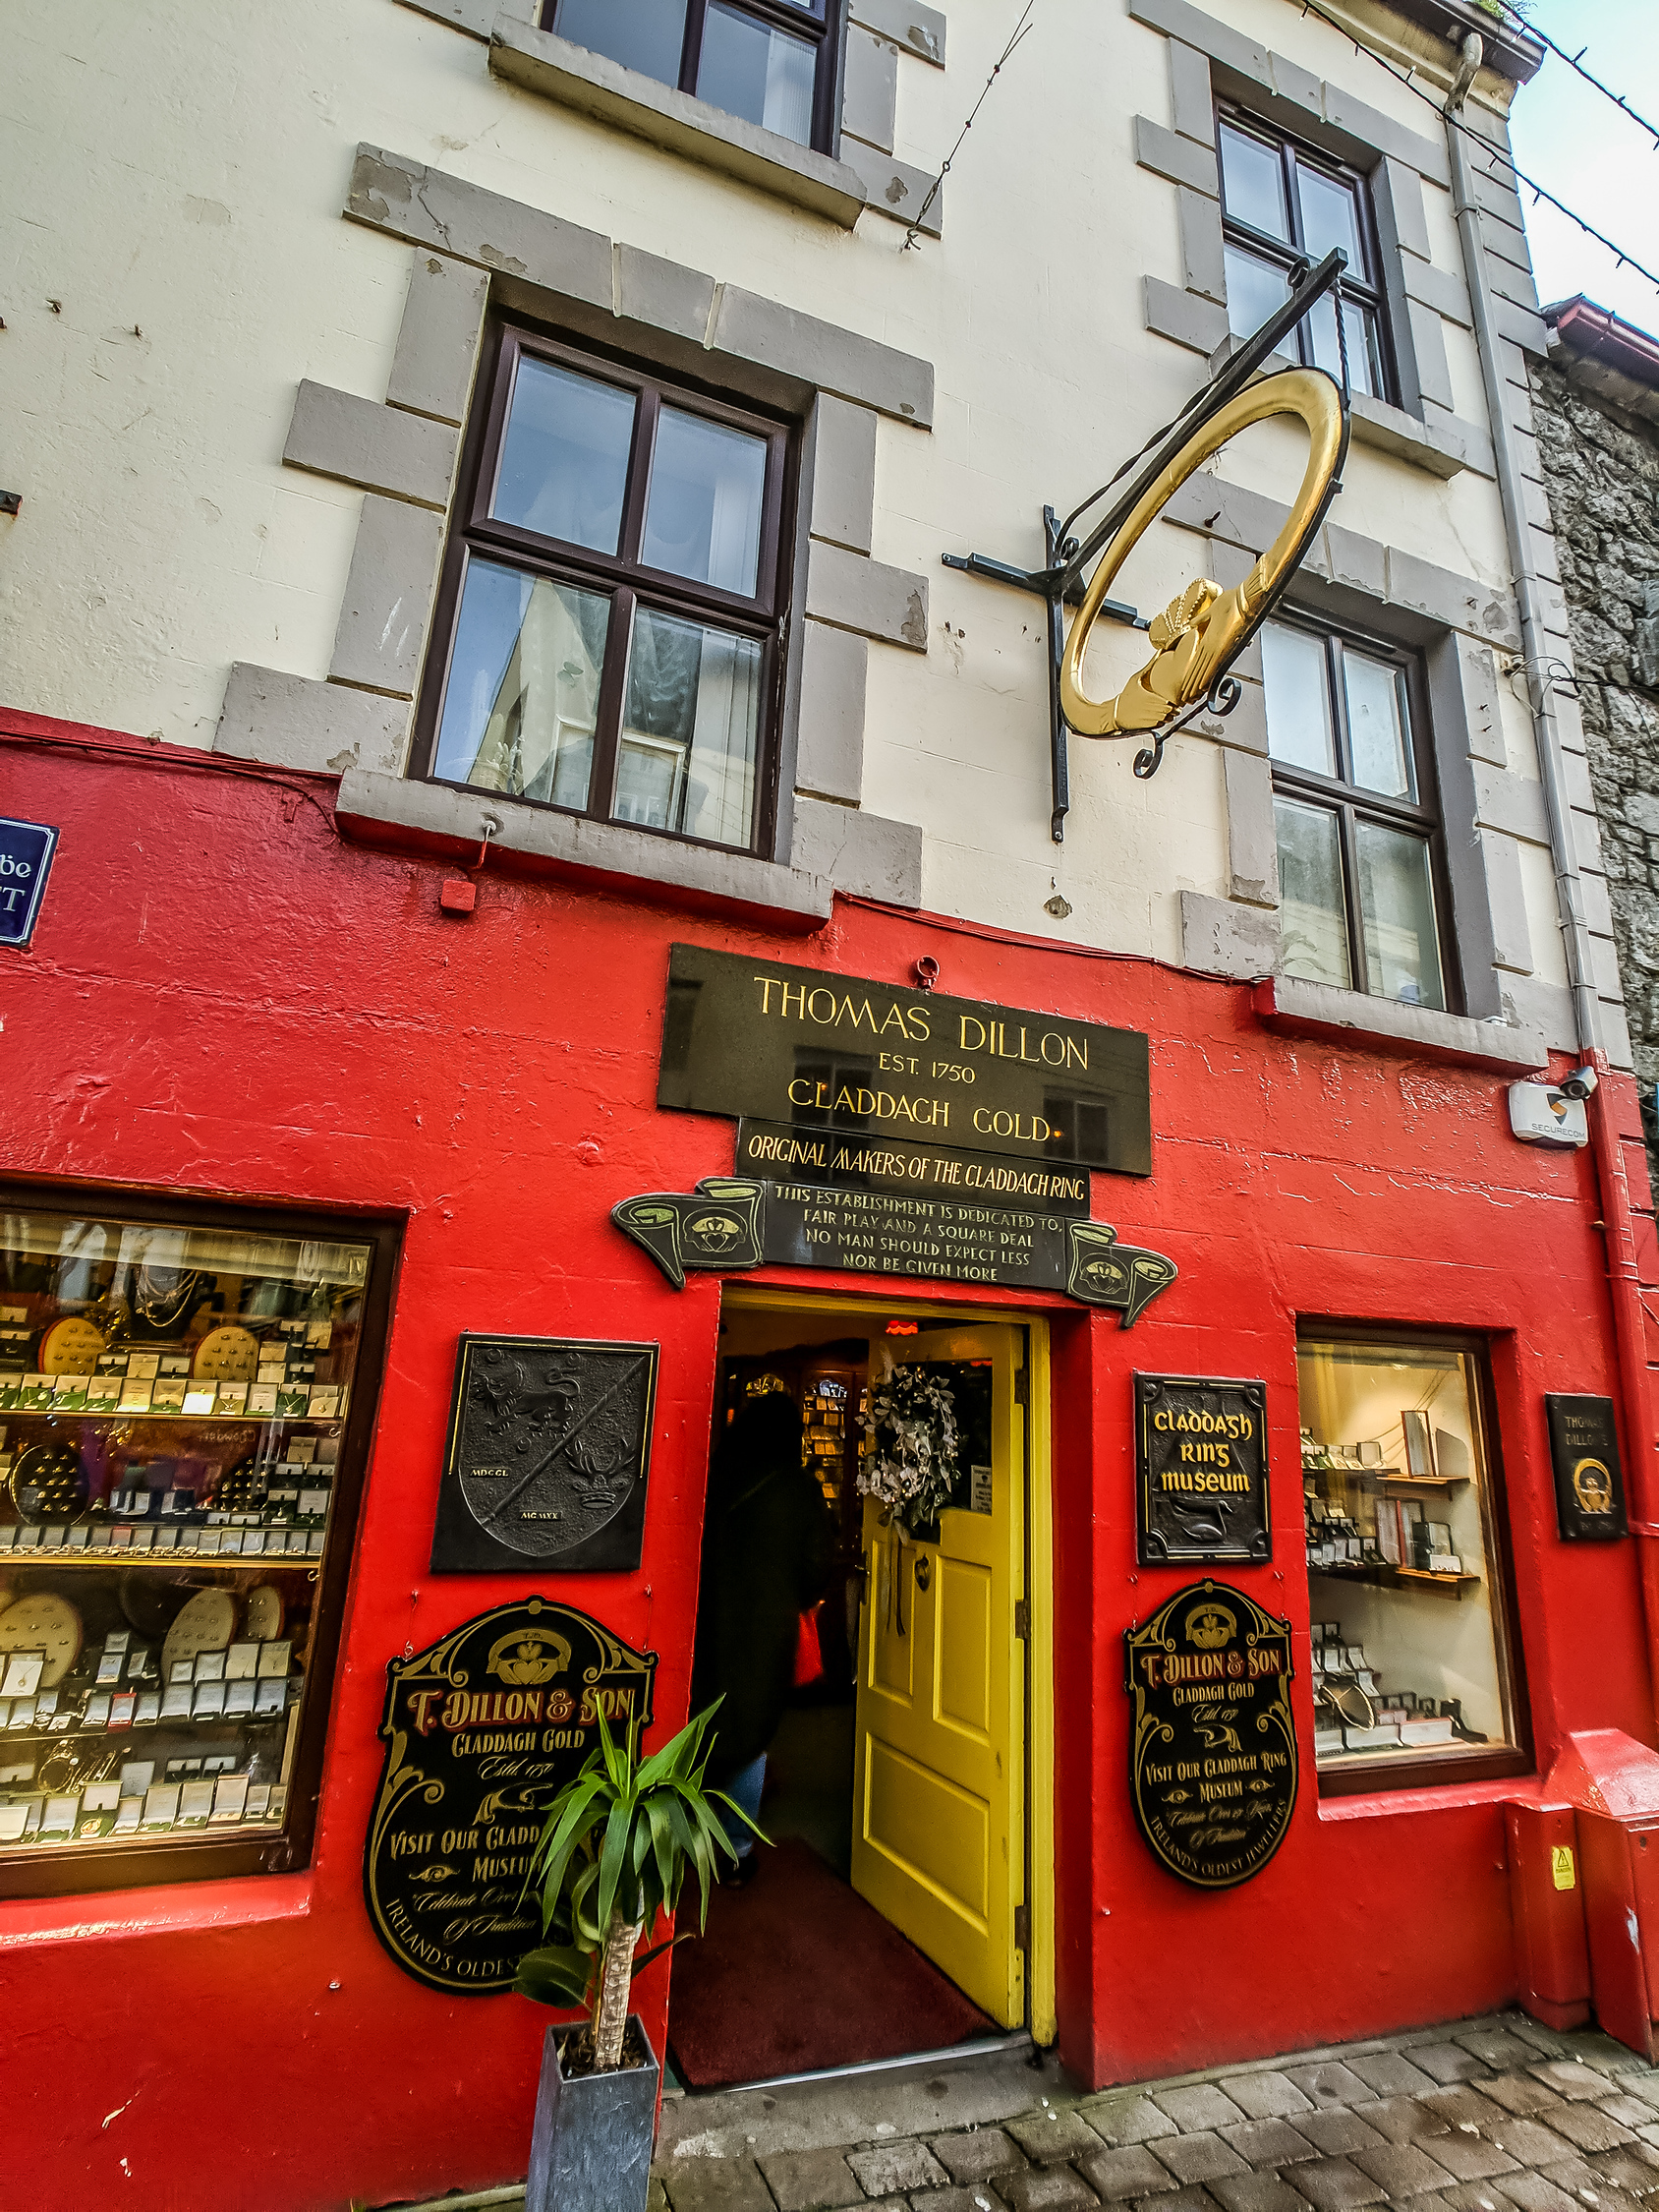 Exterior of Claddagh Ring Museum one of the most popular things to do in Galway Ireland.